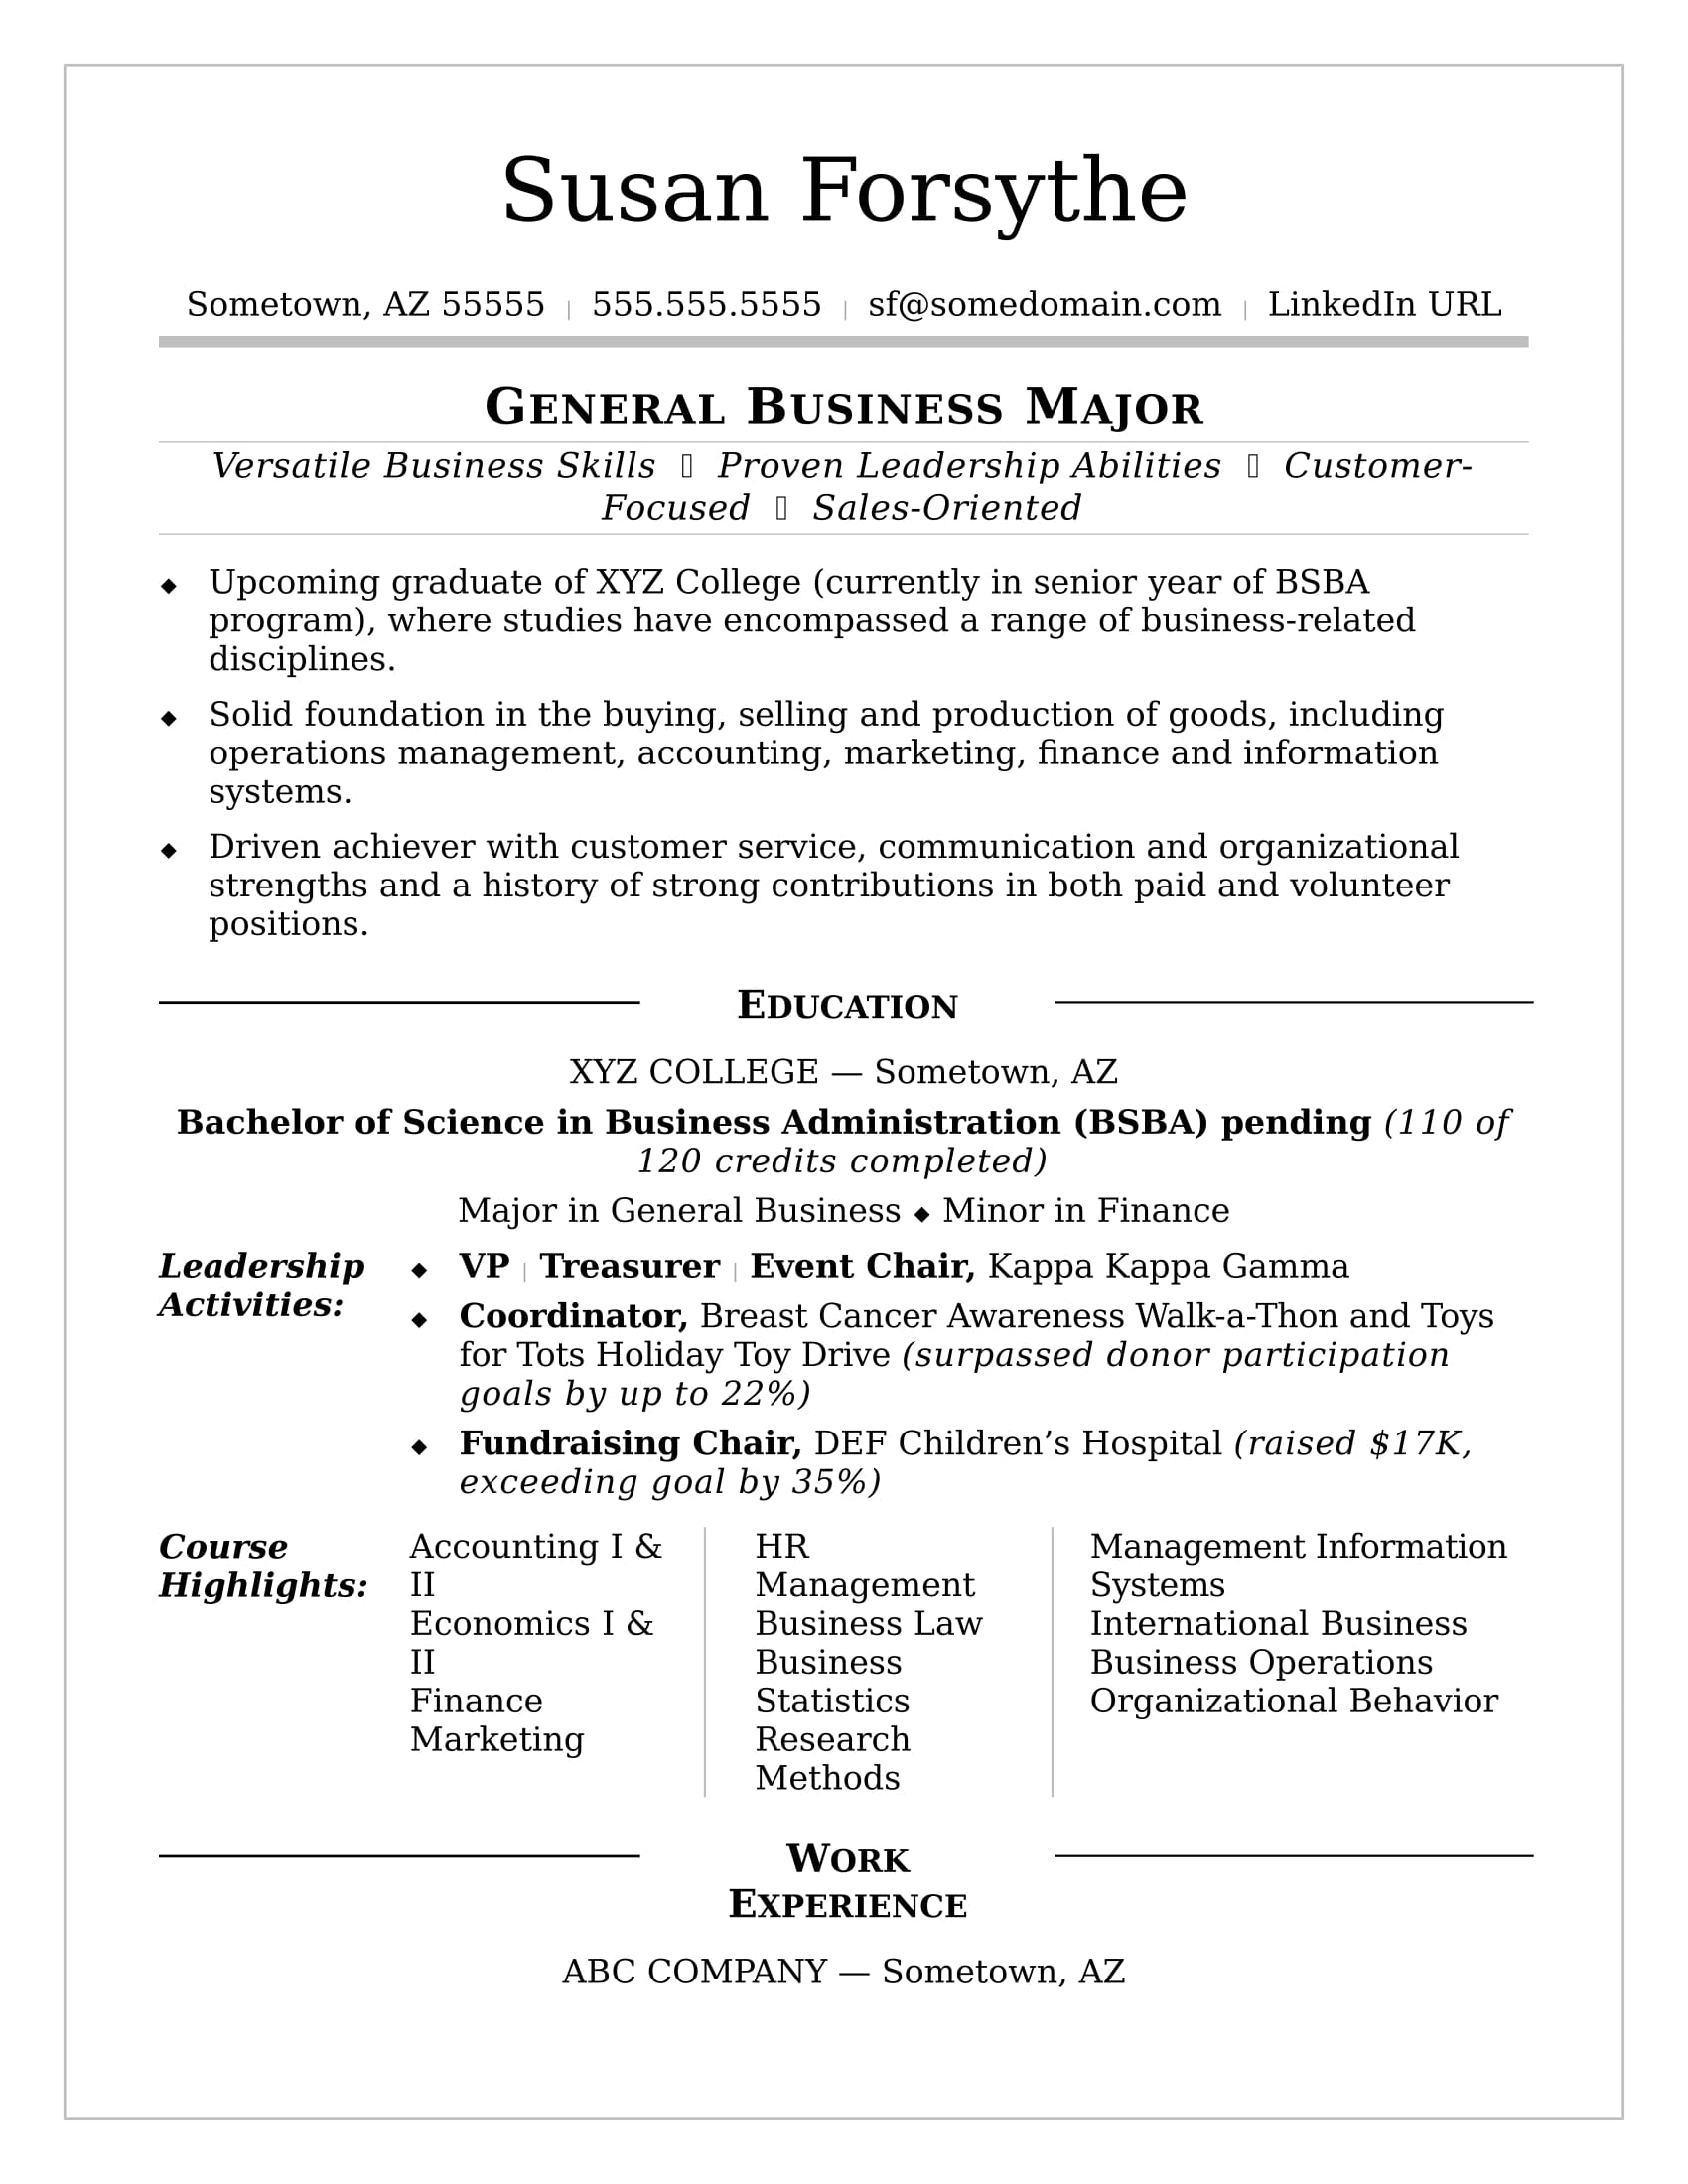 sample resume college - Sample Resume